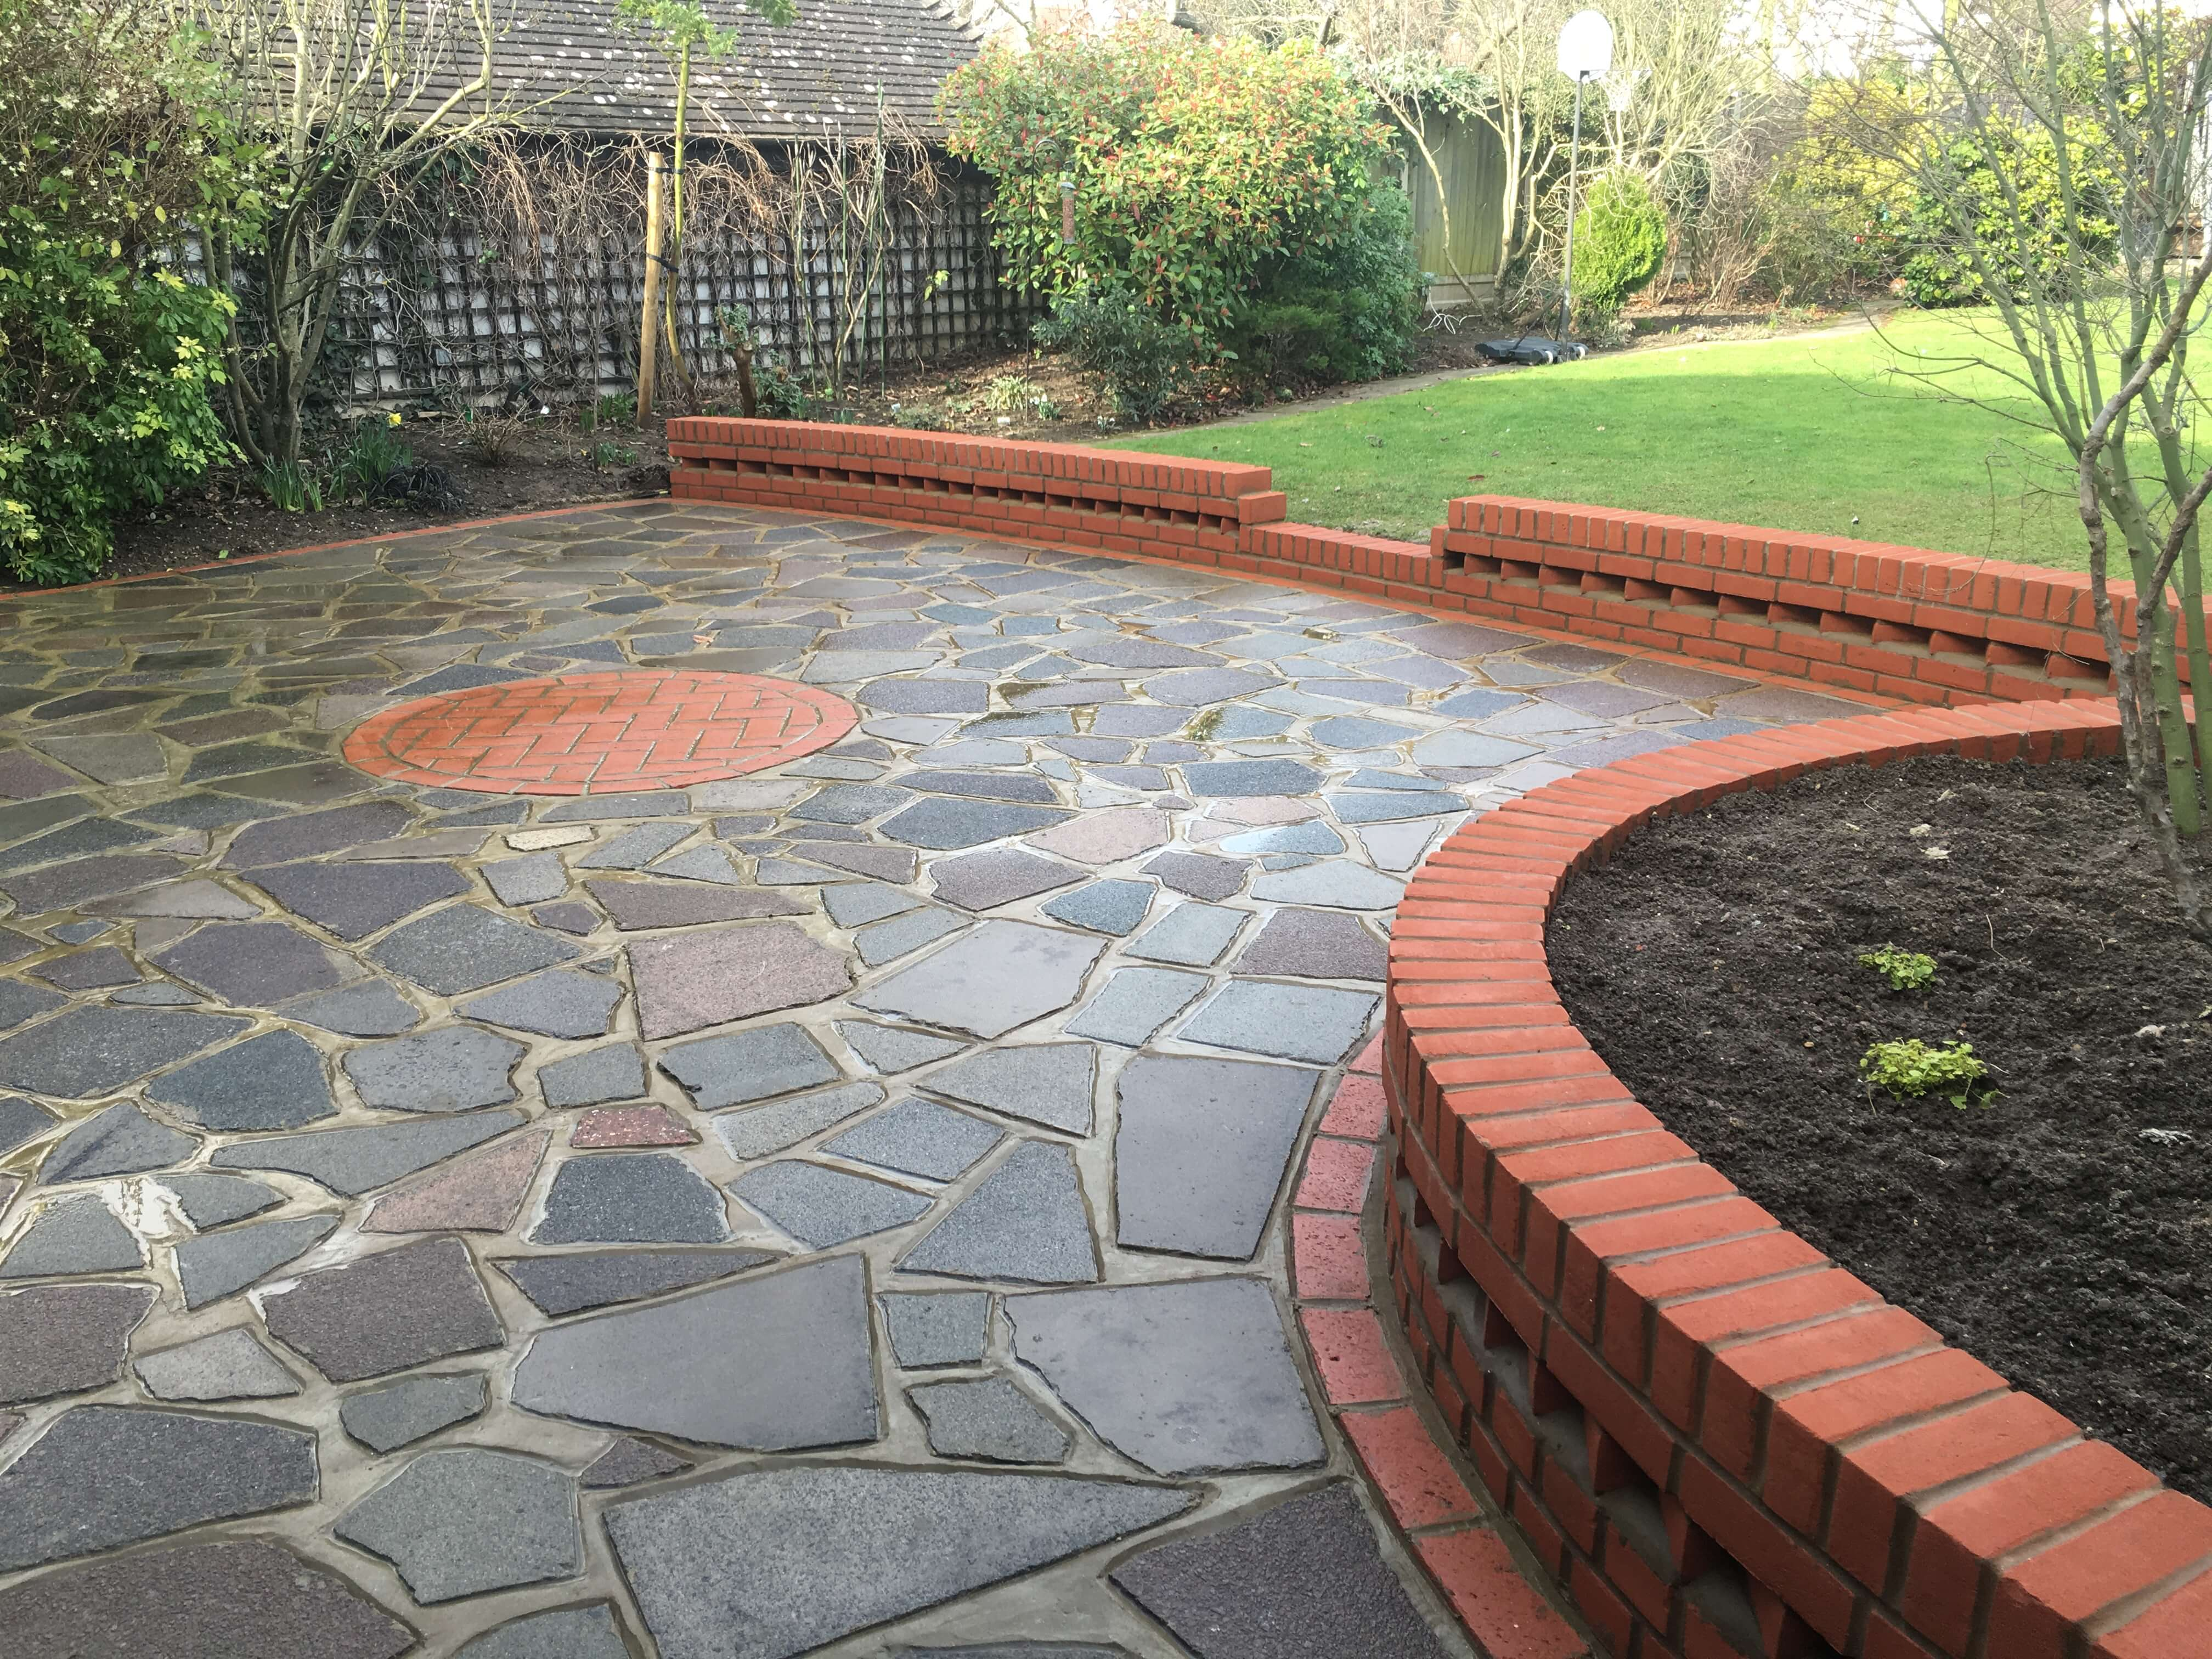 Patios & Driveways In Southend, Rochford, Brentwood, Benfleet & Surrounding Areas.